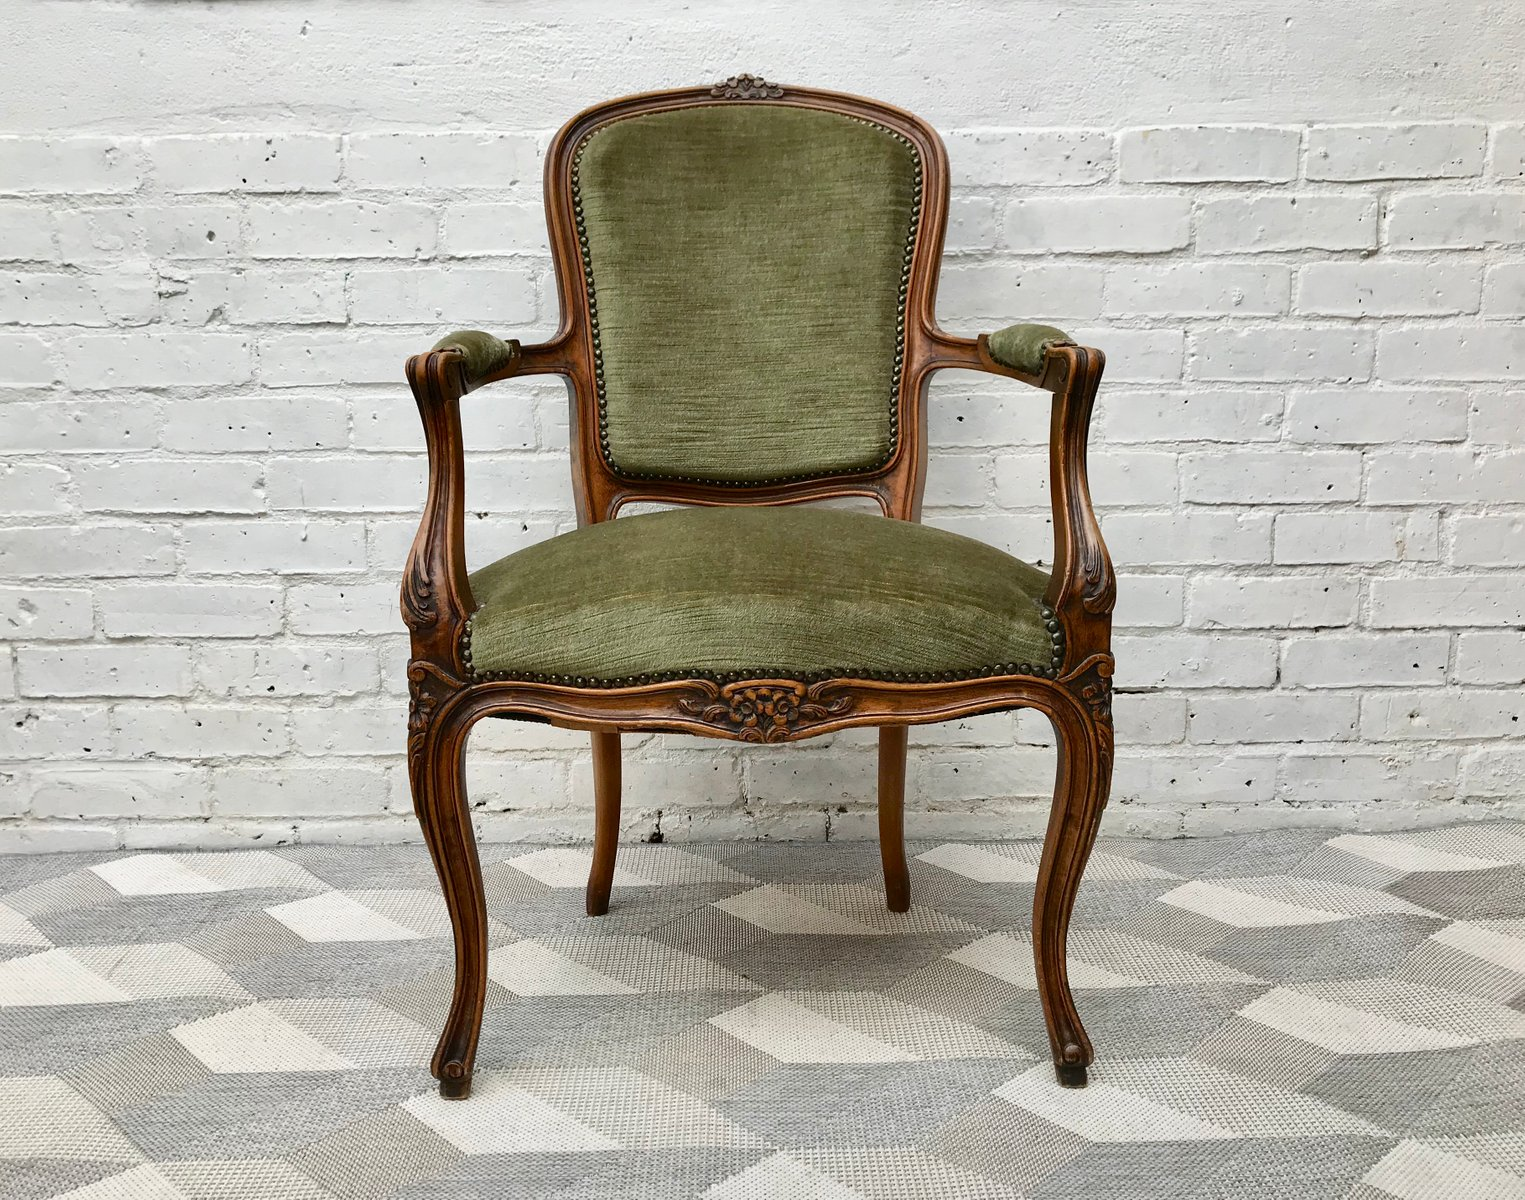 Ordinaire Vintage French Louis XVI Style Wooden Chair